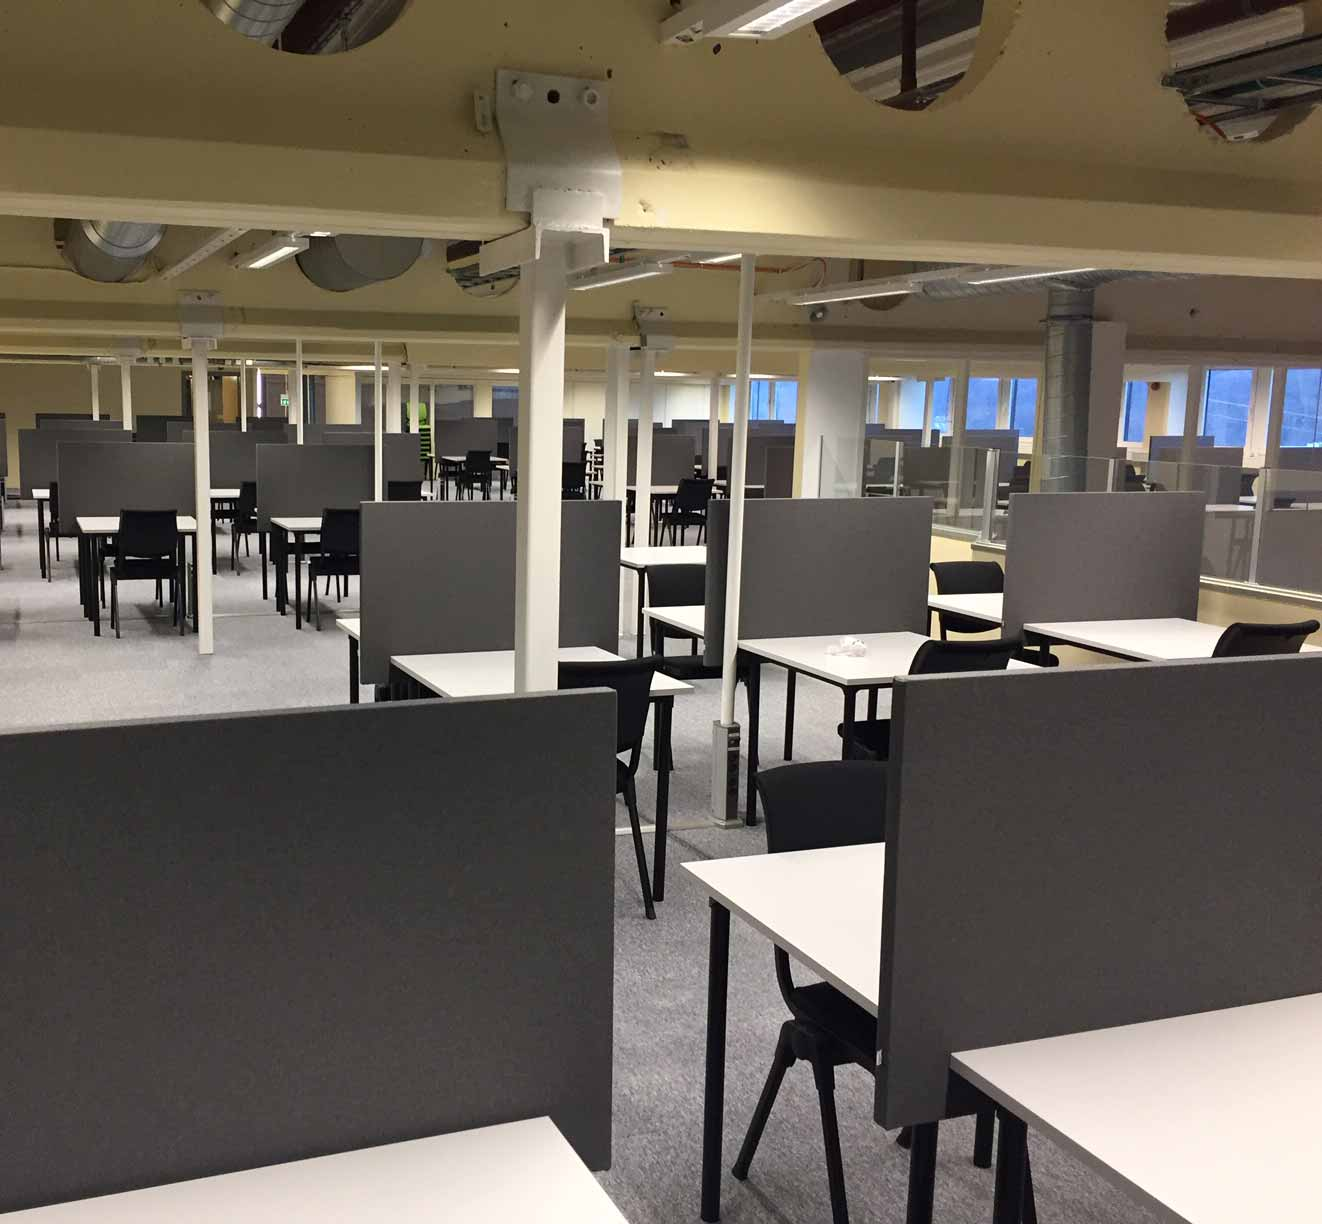 furniture arranged for exams at university